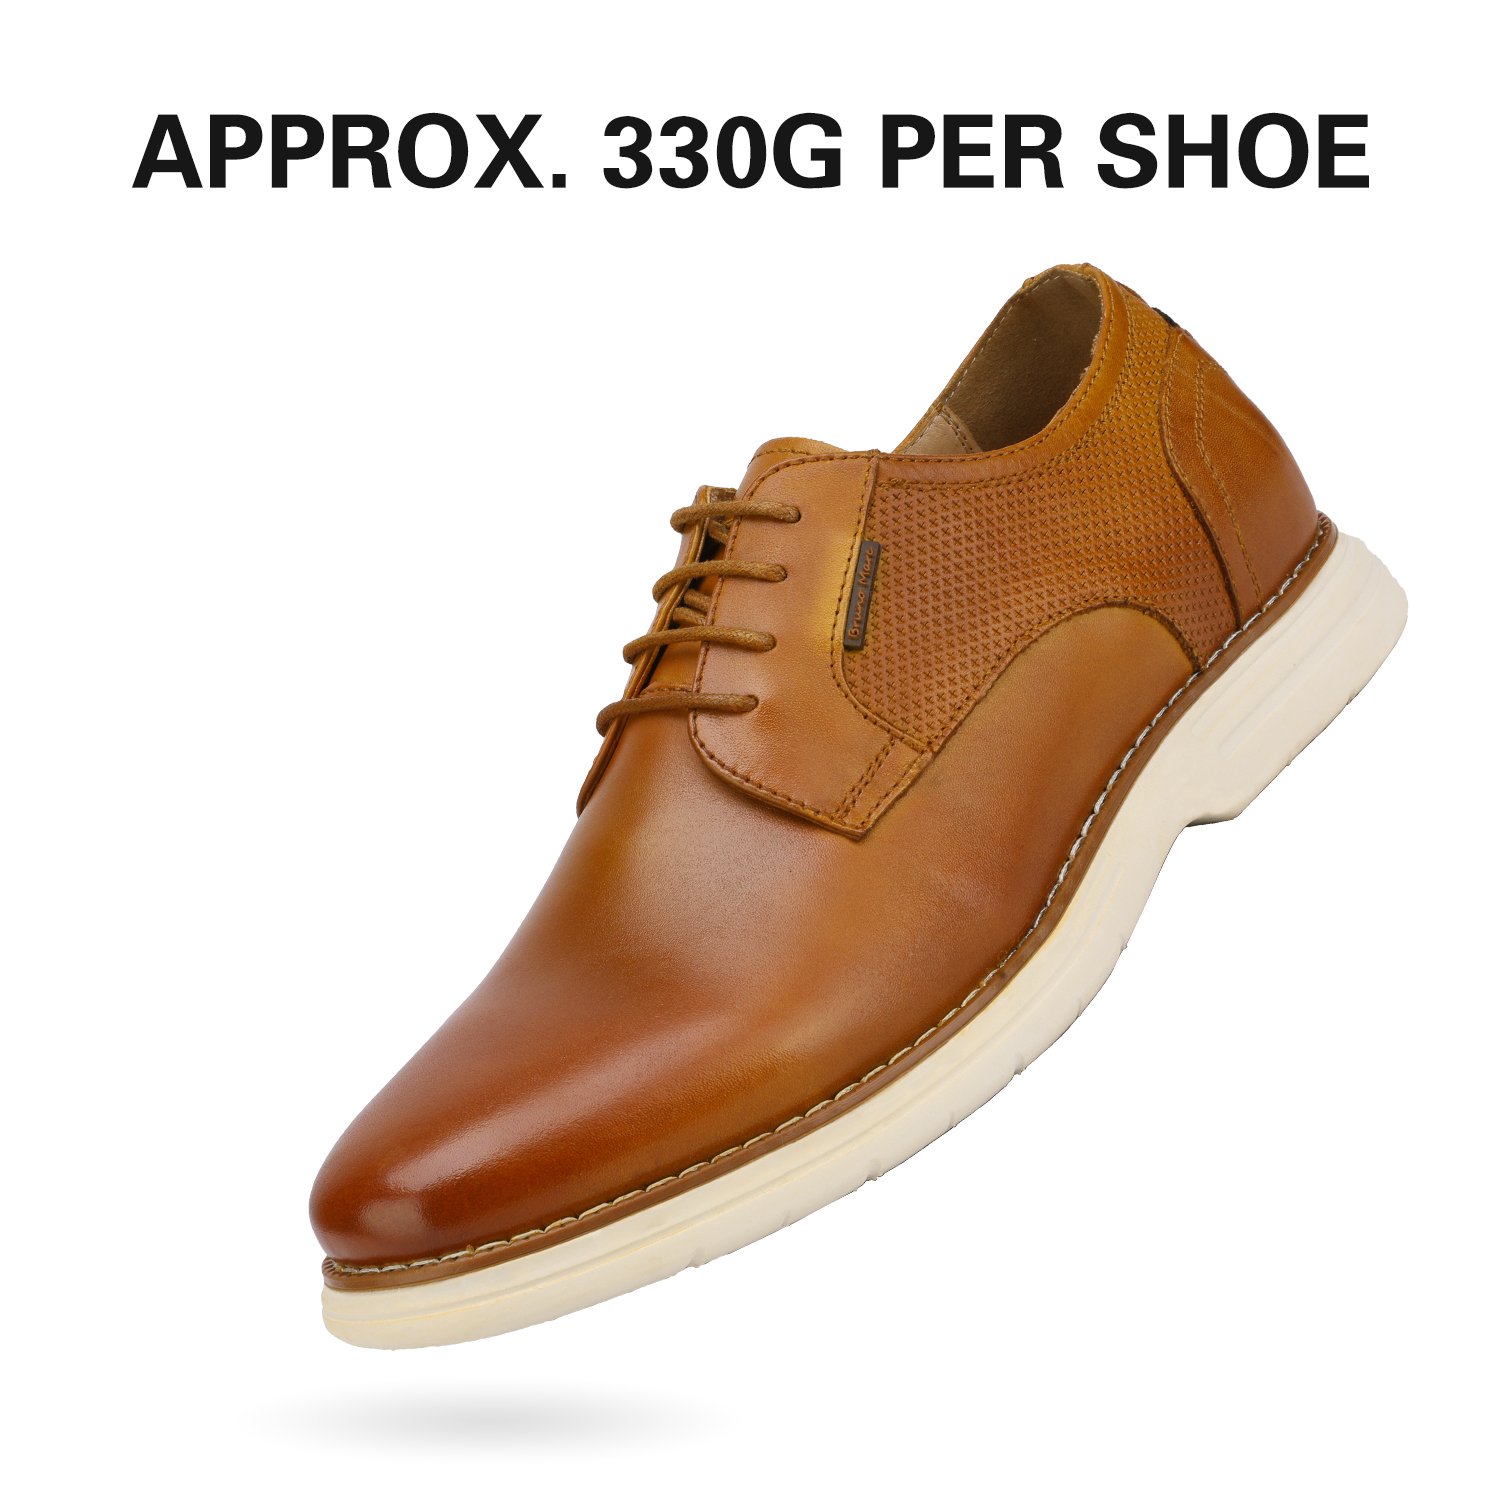 Mens-Fashion-Genuine-Leather-Business-Dress-Sneakers-Casual-Lace-up-Oxford-Shoe thumbnail 13